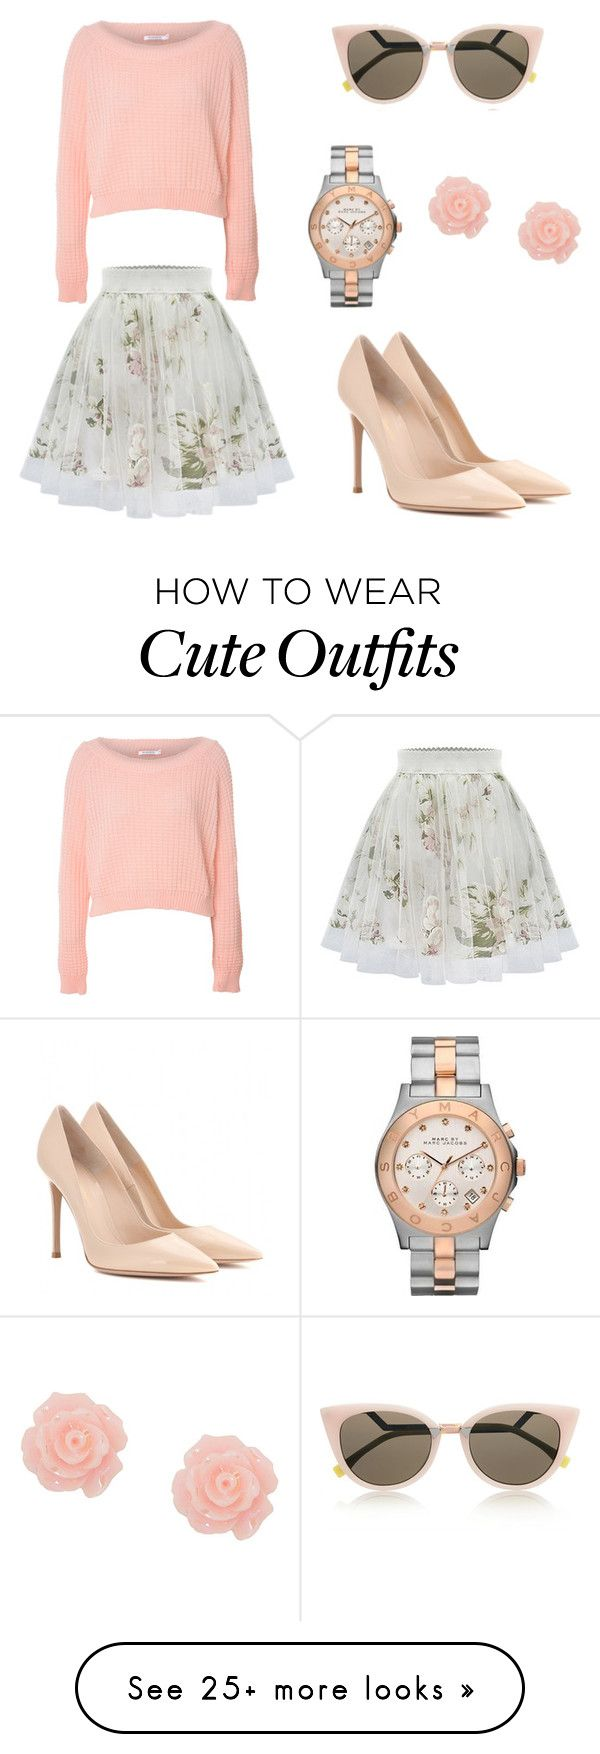 """Cute Lil Outfit"" by tametheocean on Polyvore featuring мода, Glamorous, Fendi, Marc by Marc Jacobs и Gianvito Rossi"